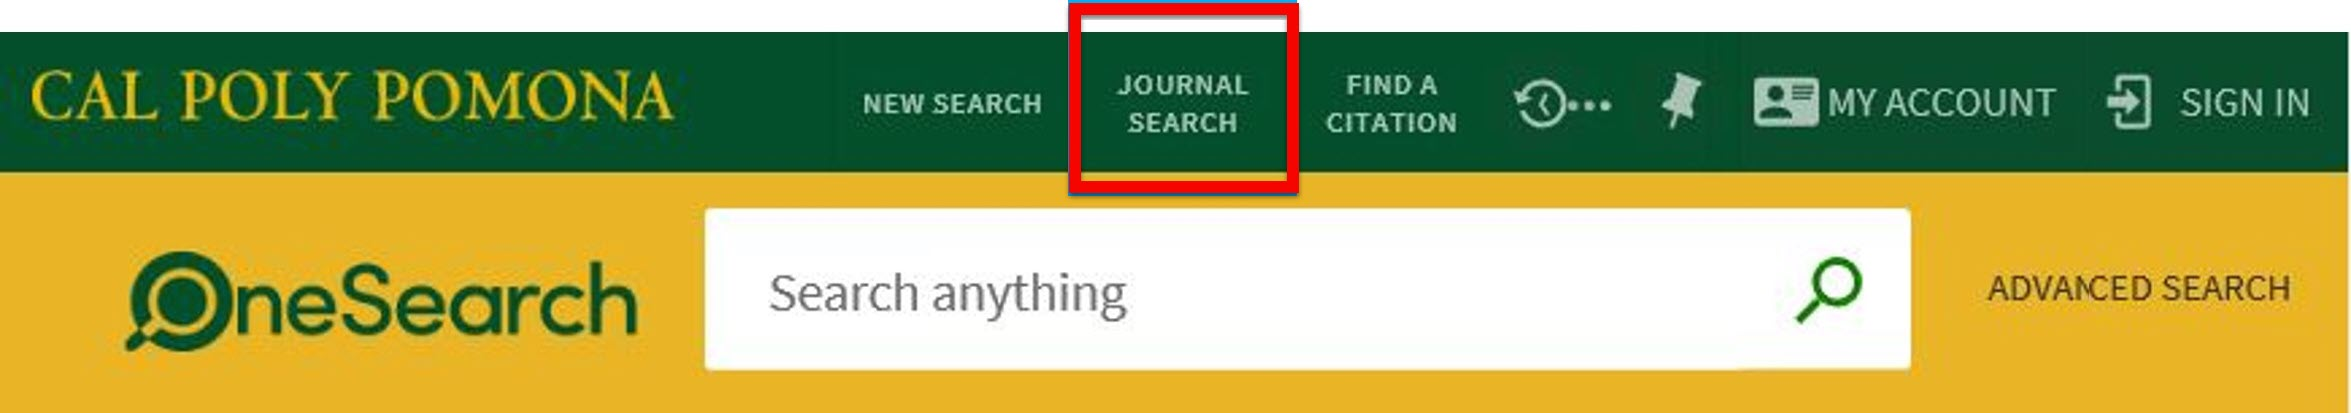 Journal Search button in OneSearch